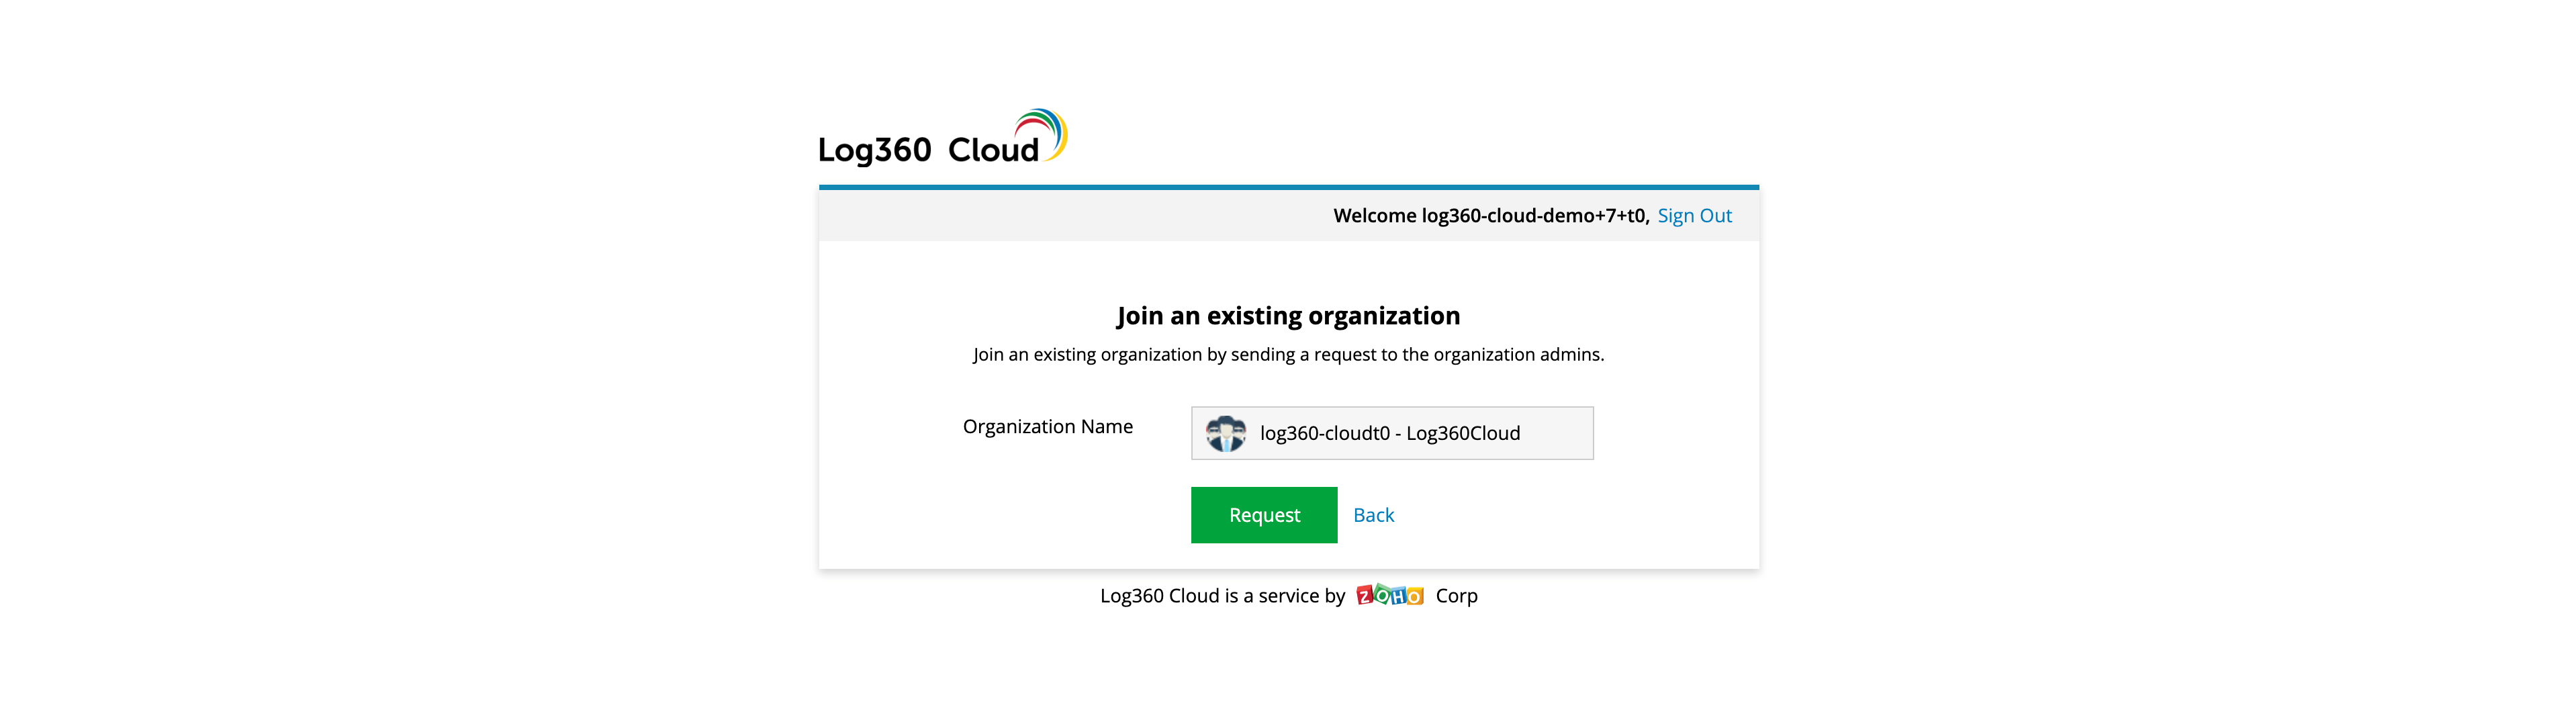 joining-an-existing-organization-log360-cloud-demo